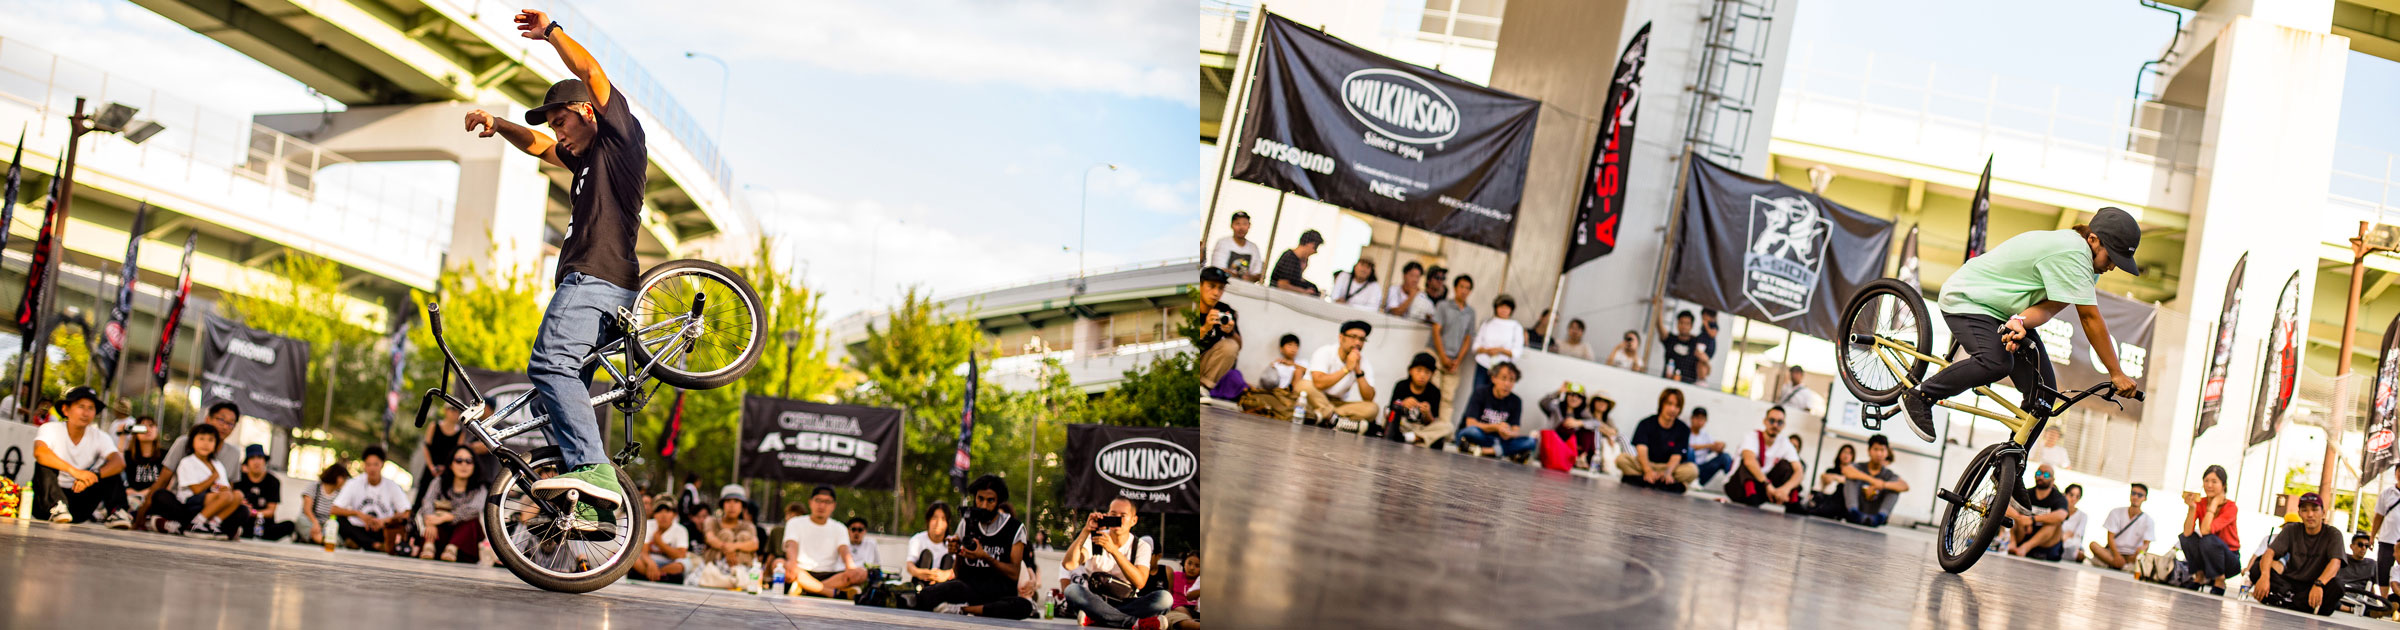 CHIMERA-A-SIDEの2ndLEAGUE-2019のReport メイン画像:BMX-Flatland BMXフラットランド